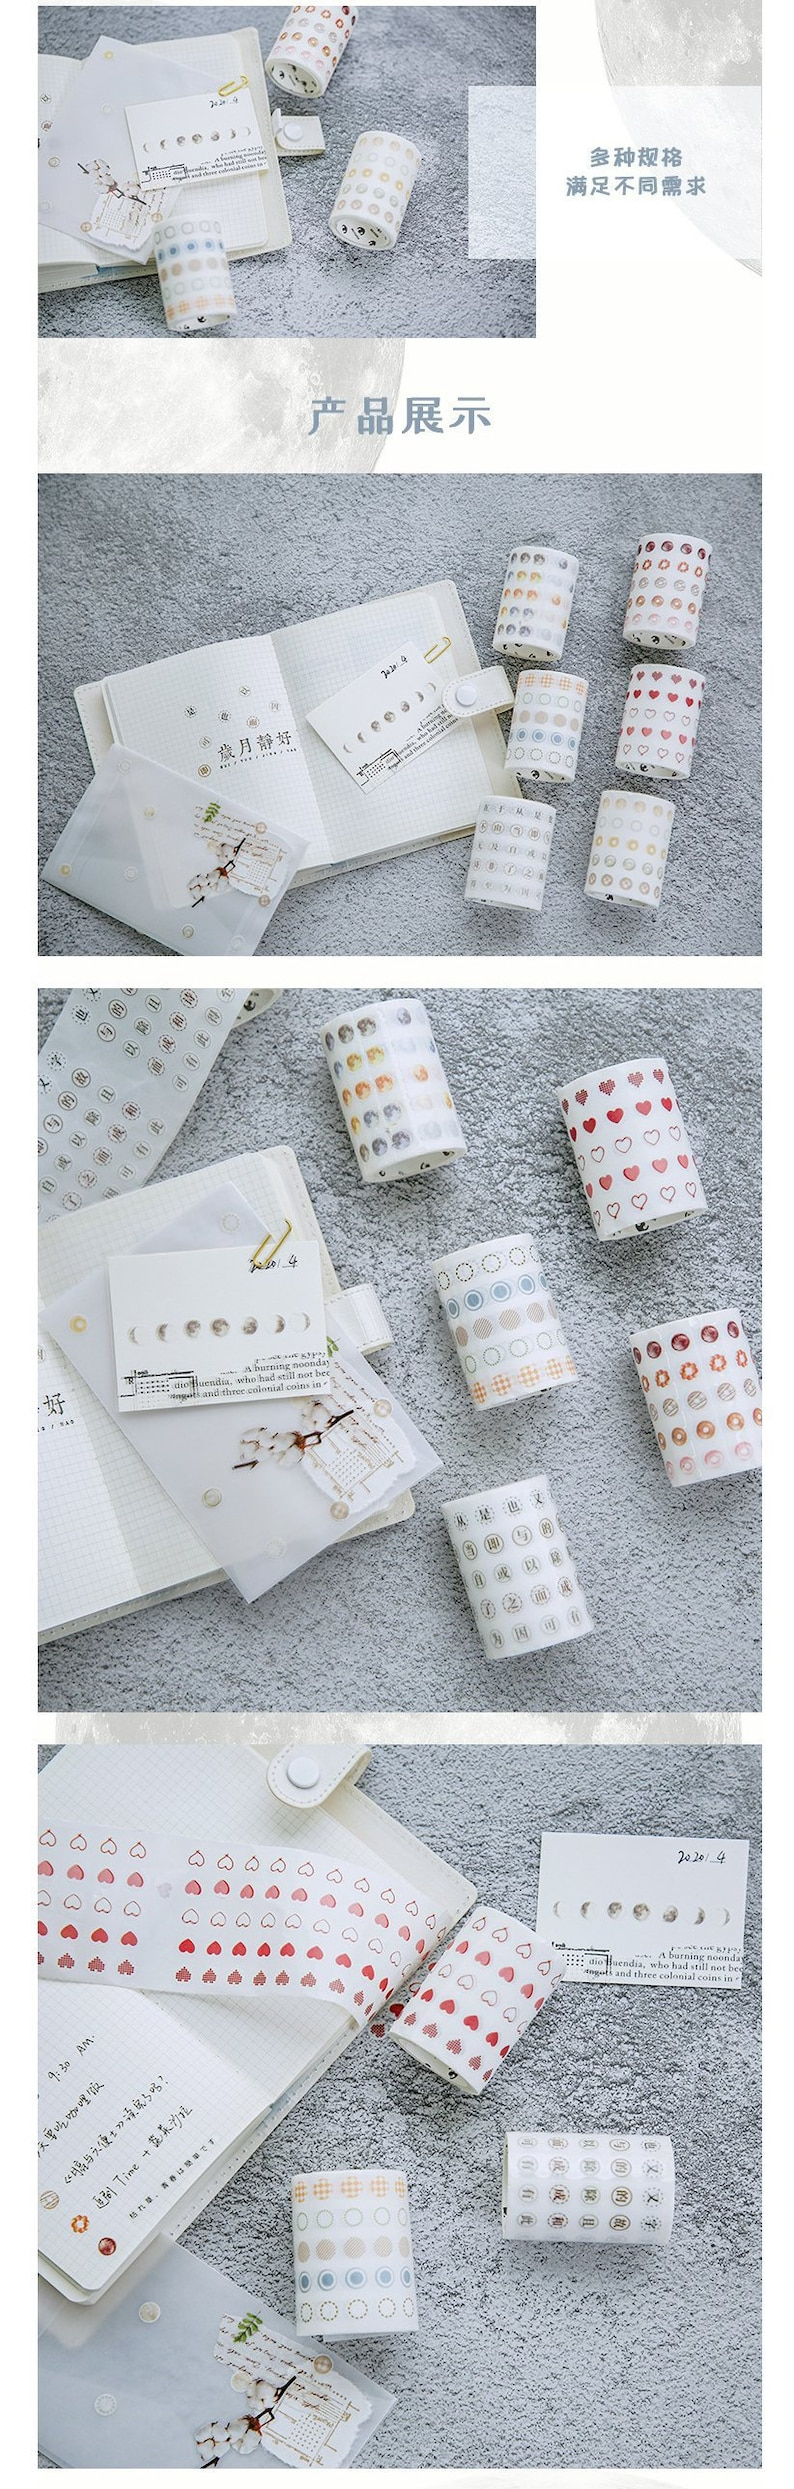 Journal KS-RT-497 Planner Decoration Washi Time Basic Dot Series Roll Tapes Craft bullet journal accessory 6 Types Scrapbooking